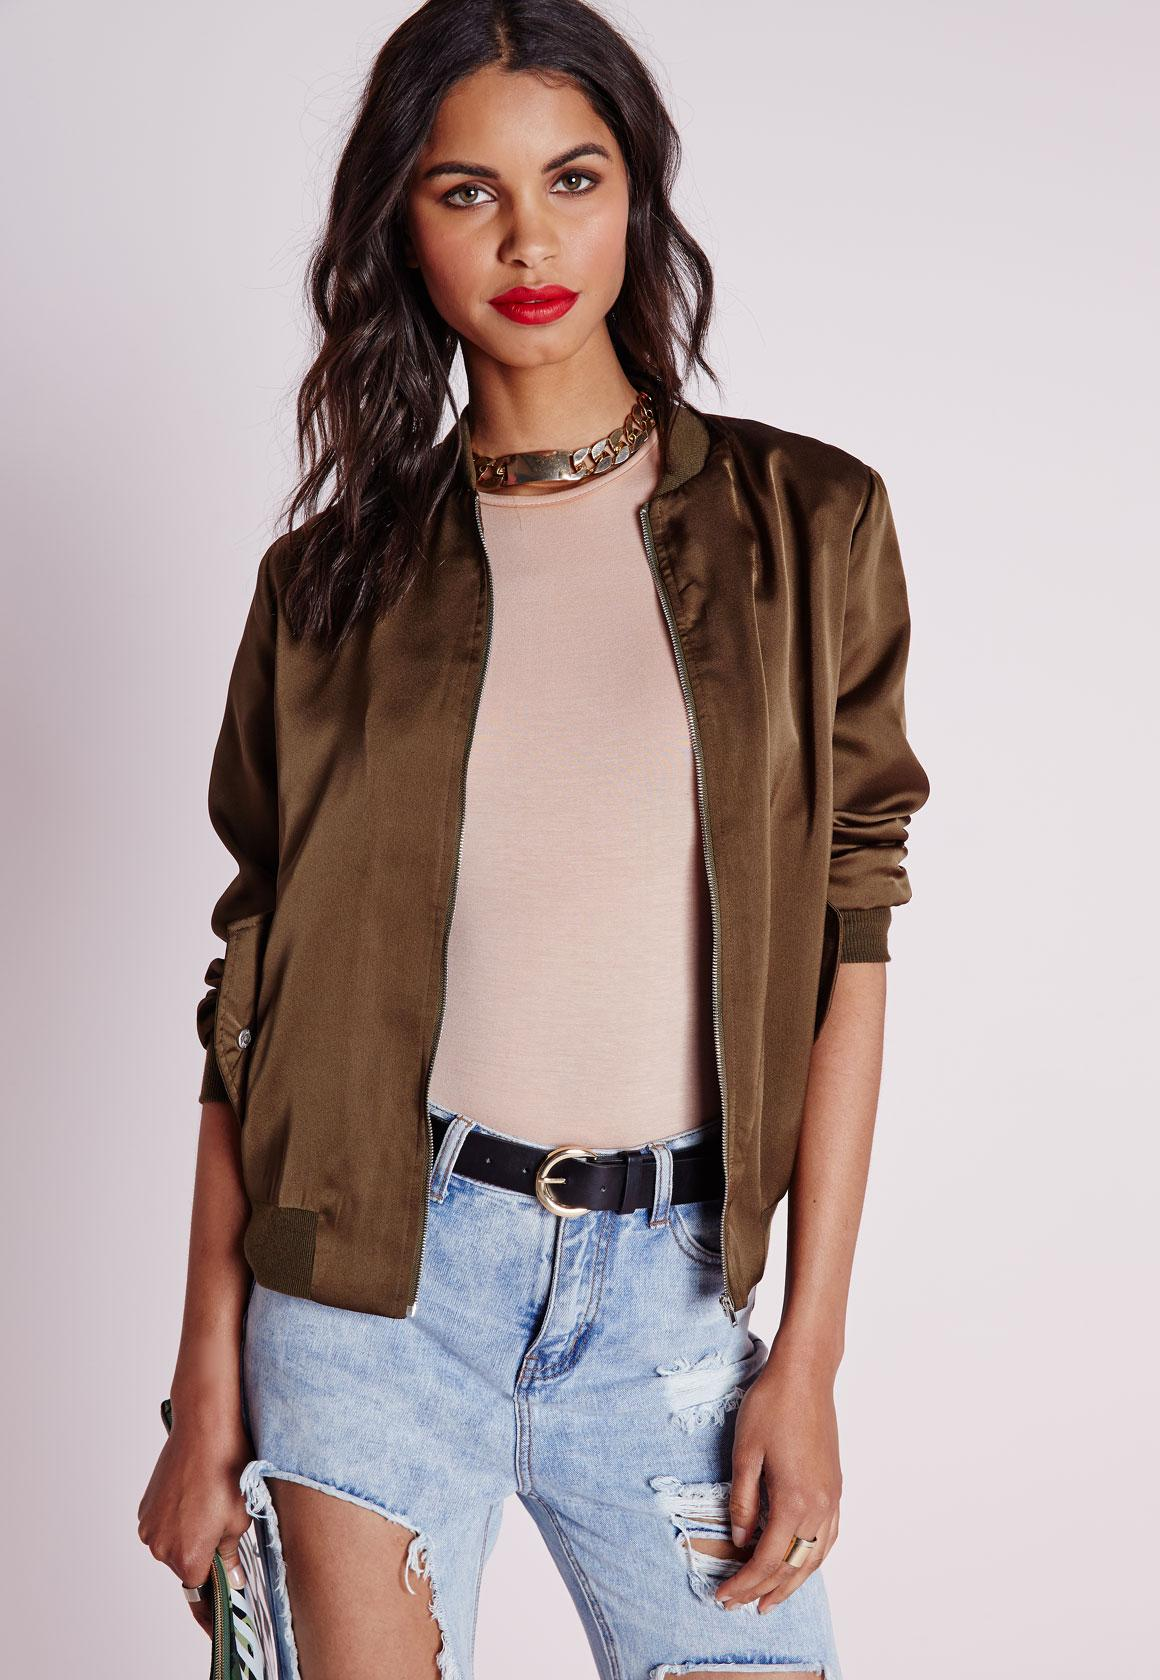 Silk Bomber Jacket Khaki - Coats and Jackets - Bomber Jackets ...